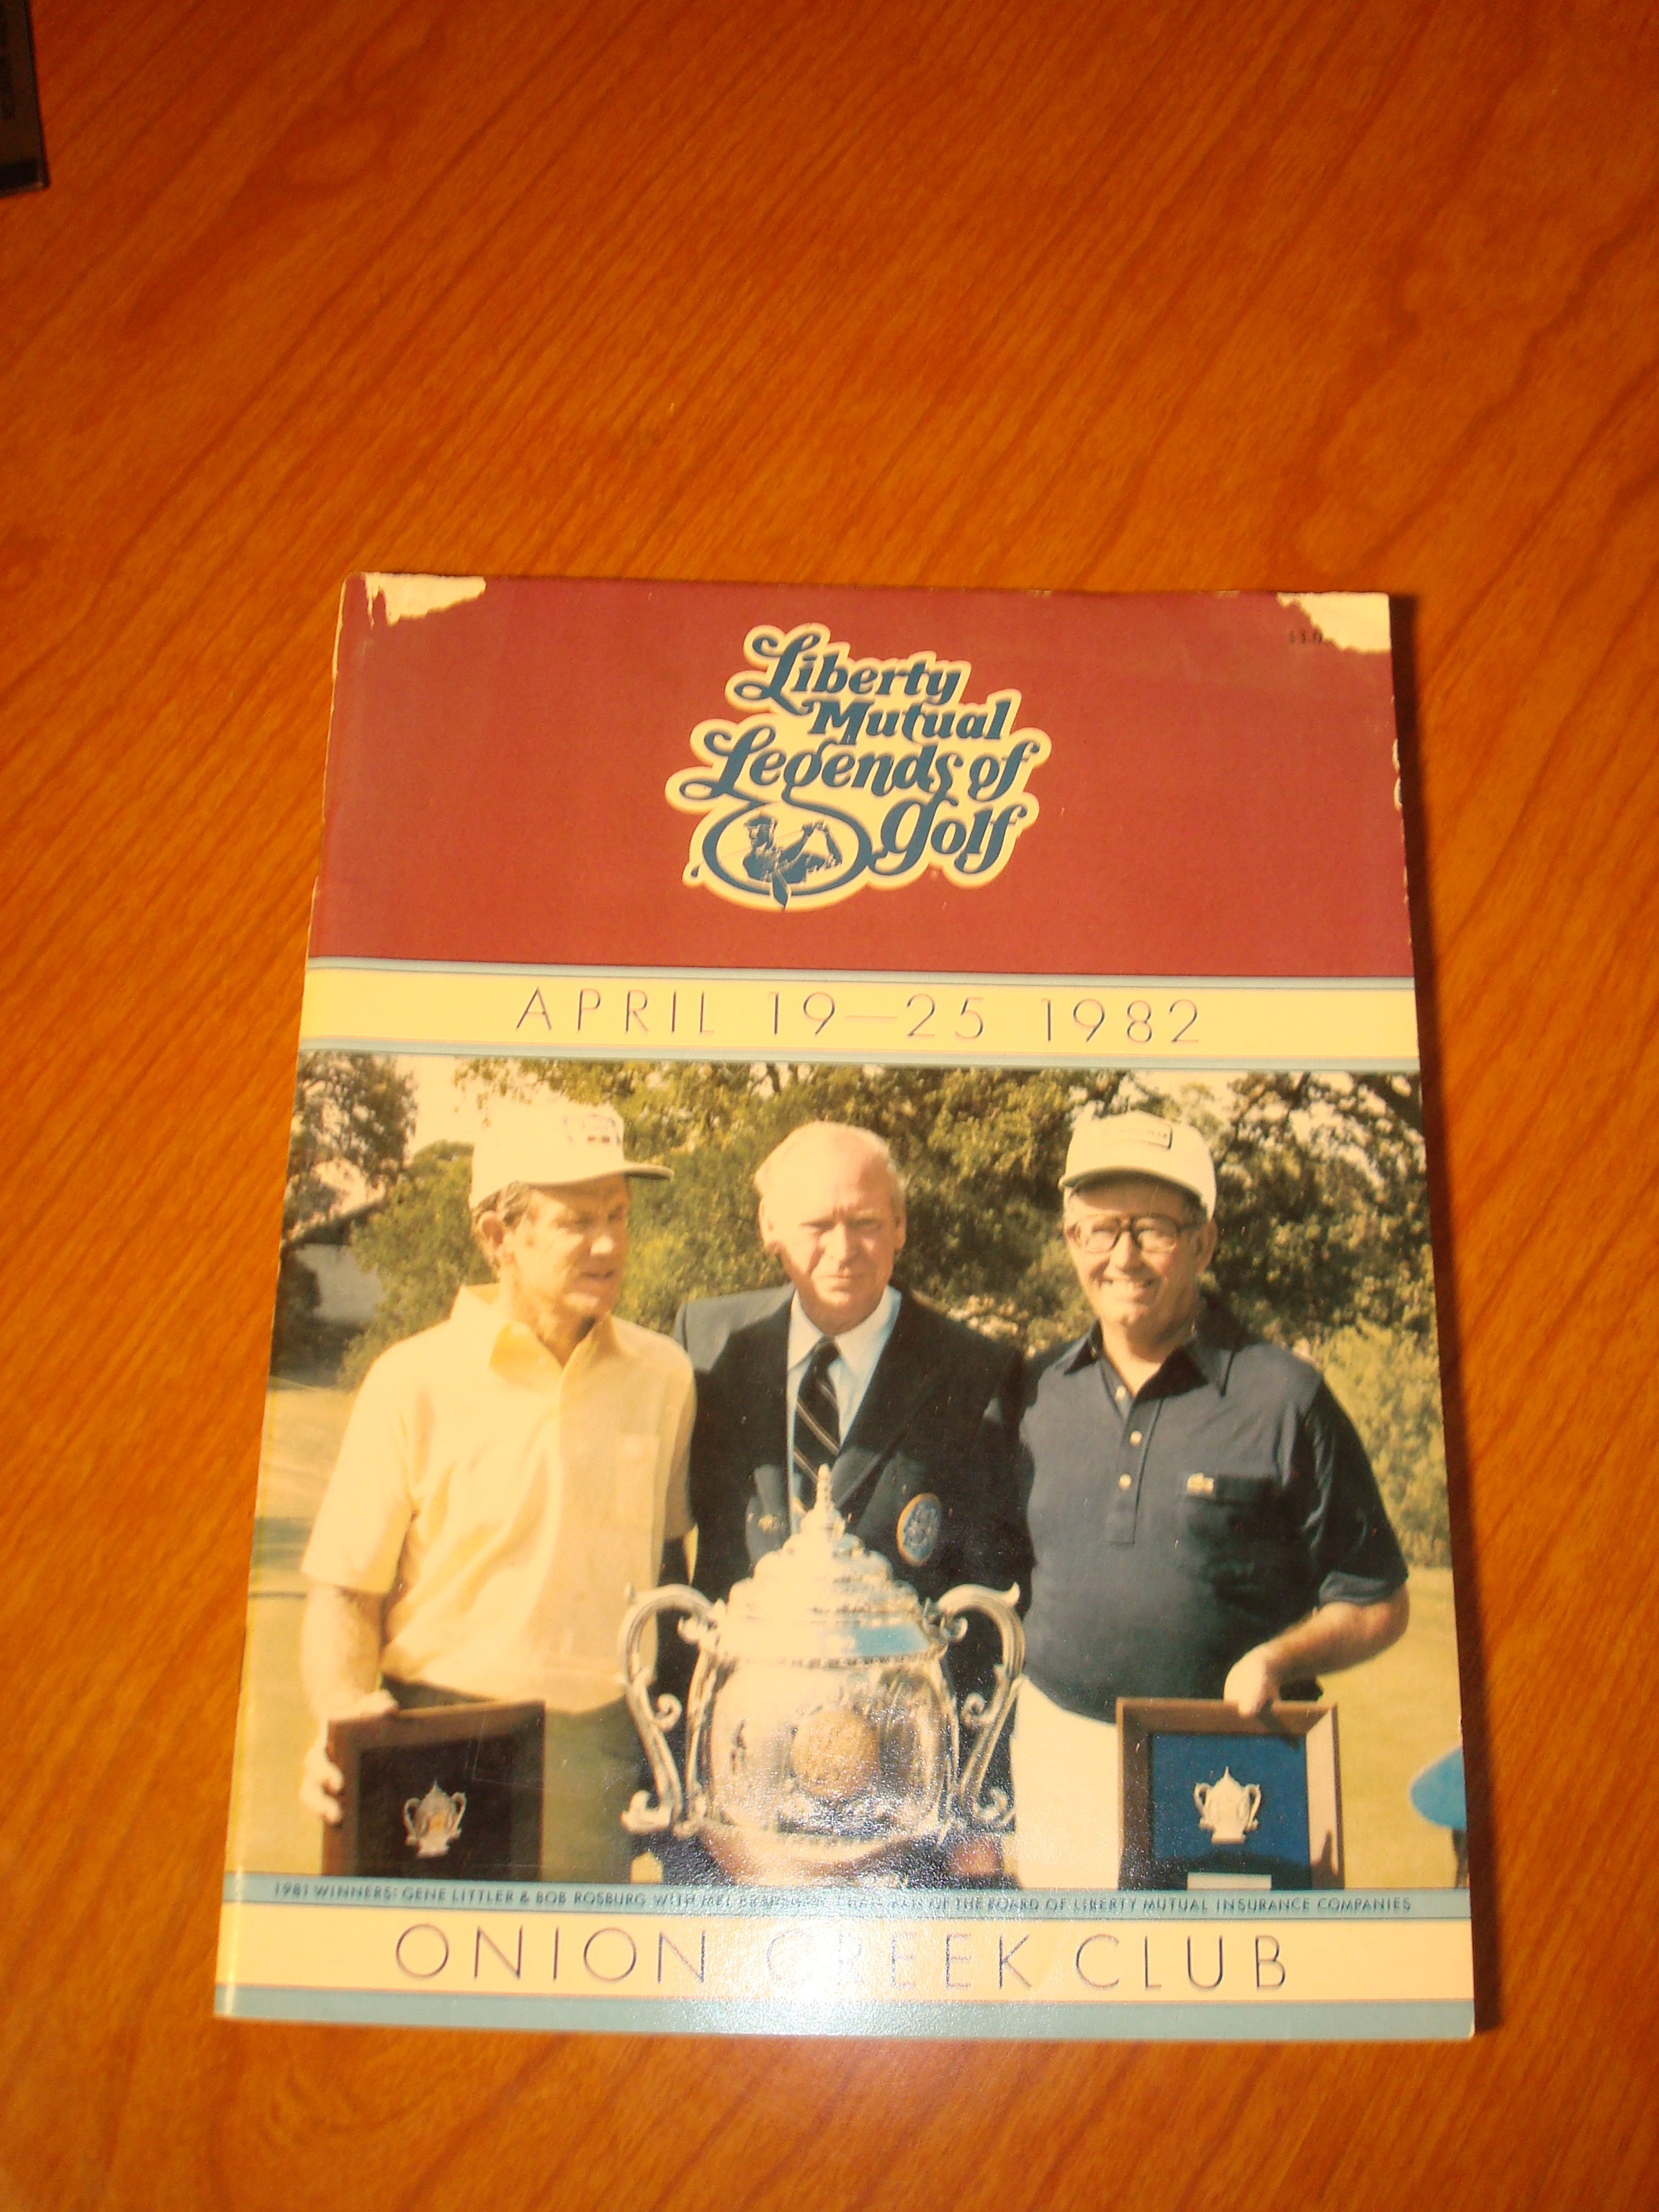 Photo of Highlights Of Liberty Mutual Legends of Golf From Austin, Texas –  1st Five Years